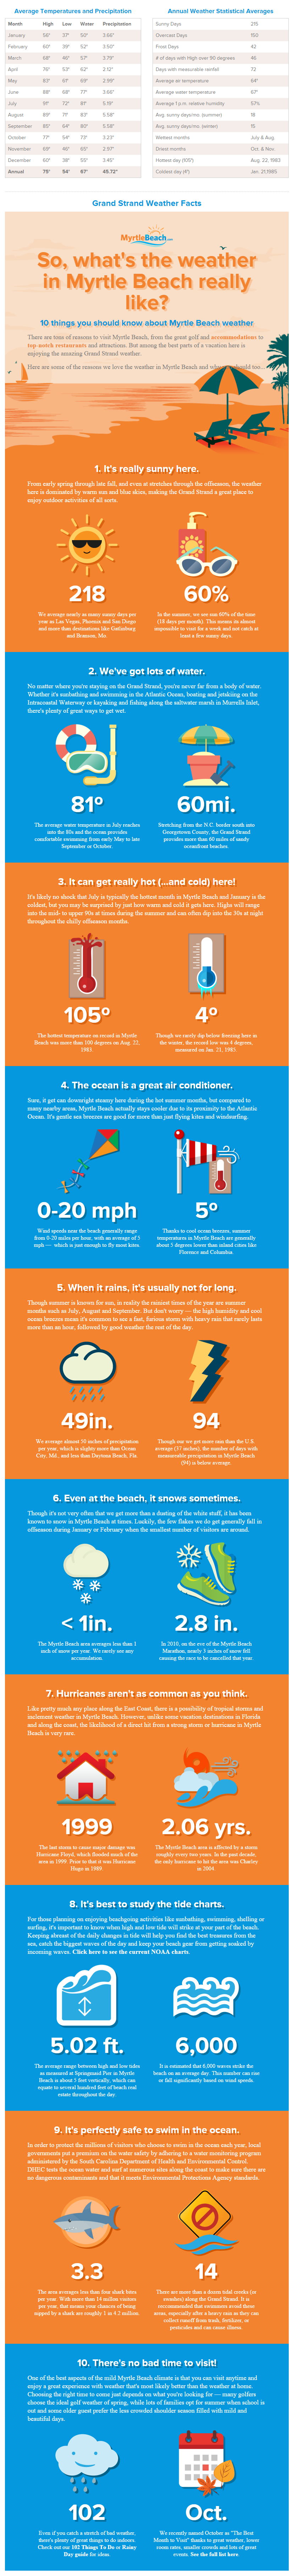 Myrtle beach weather questions answered plantation resort myrtle beach weather facts infographic when planning your vacation at plantation resort nvjuhfo Gallery